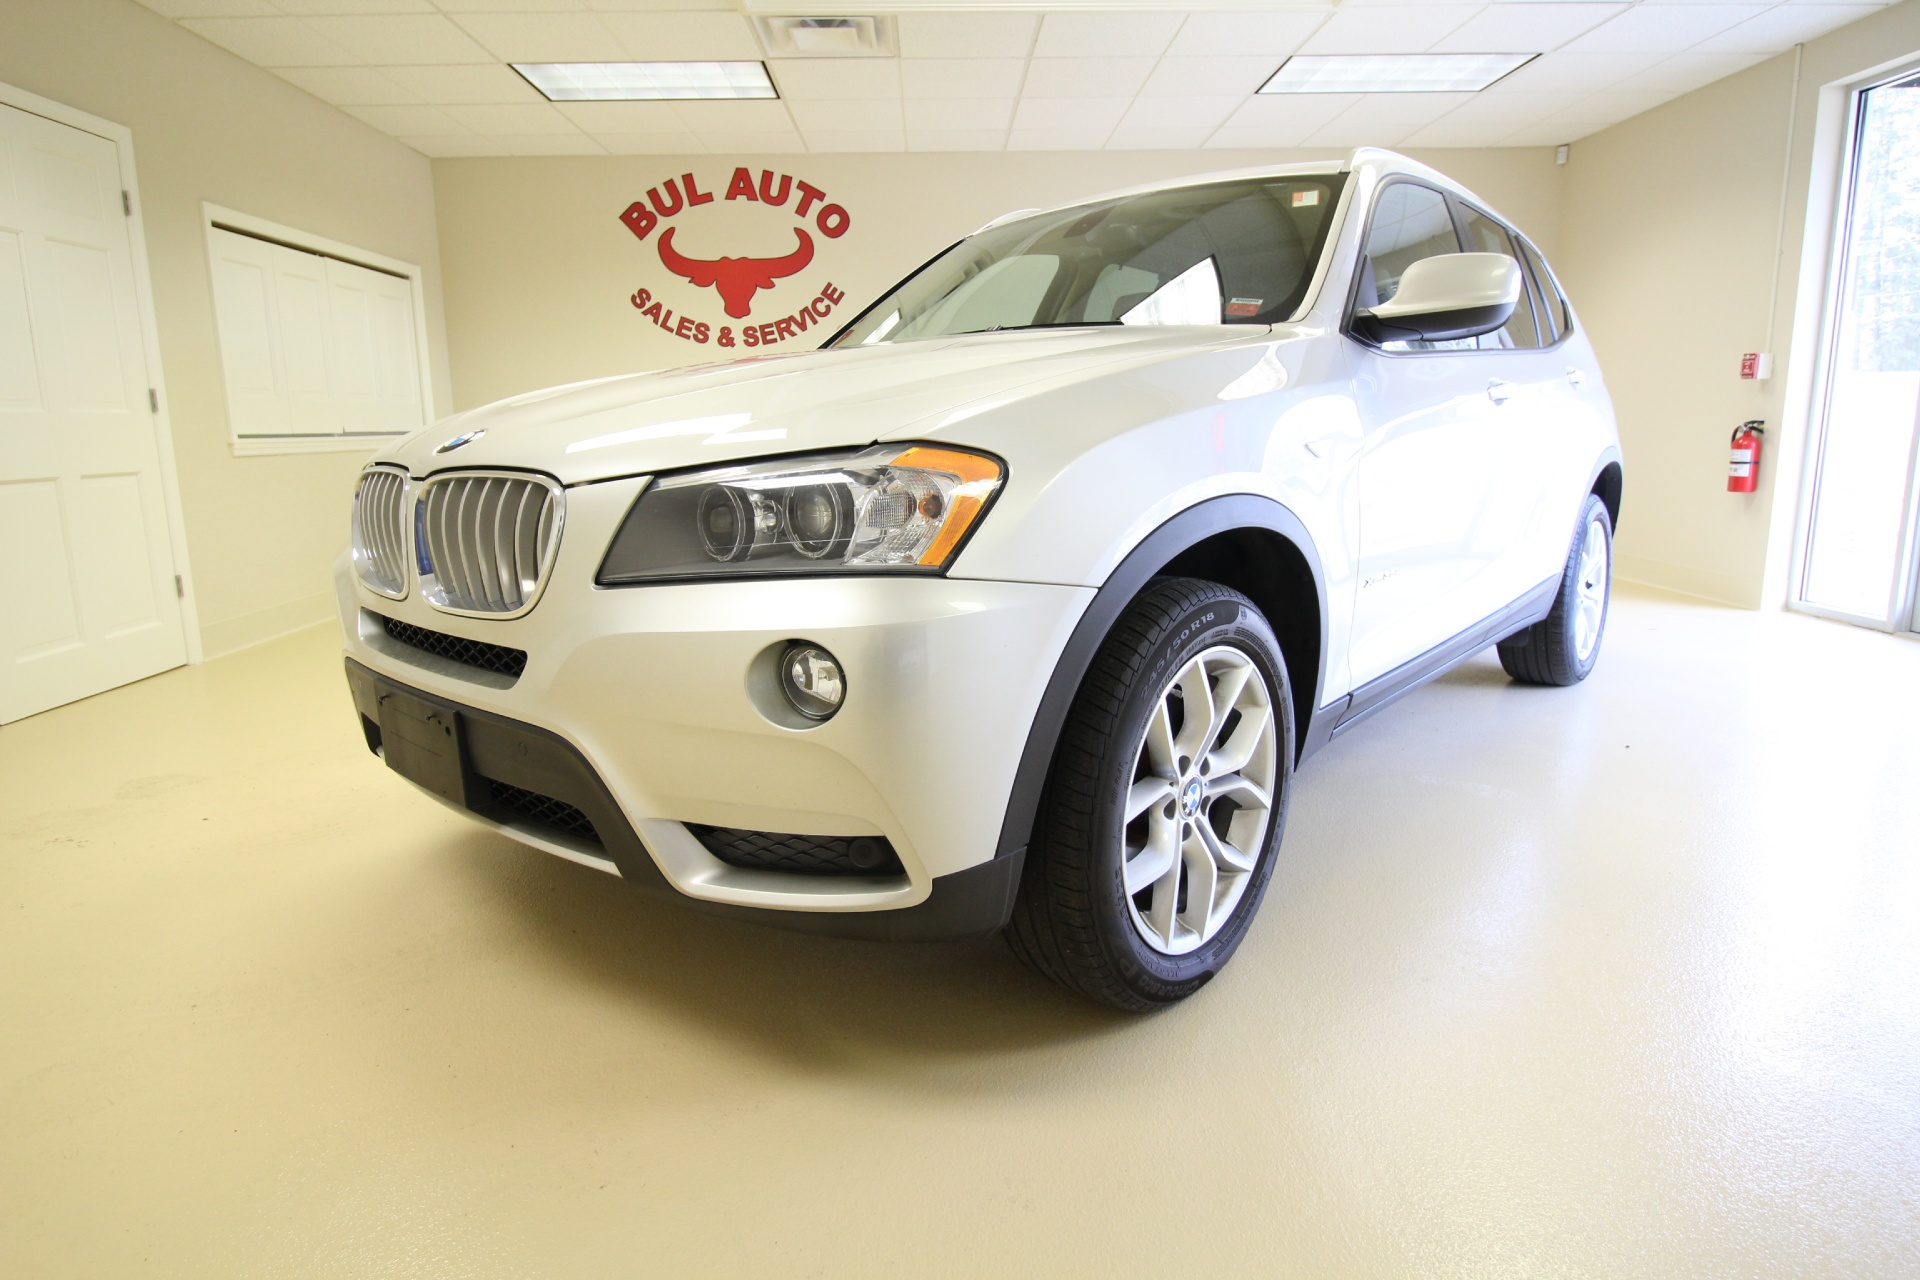 used 2012 bmw x3 xdrive35i extended free maintenance to 100kvery clean albany